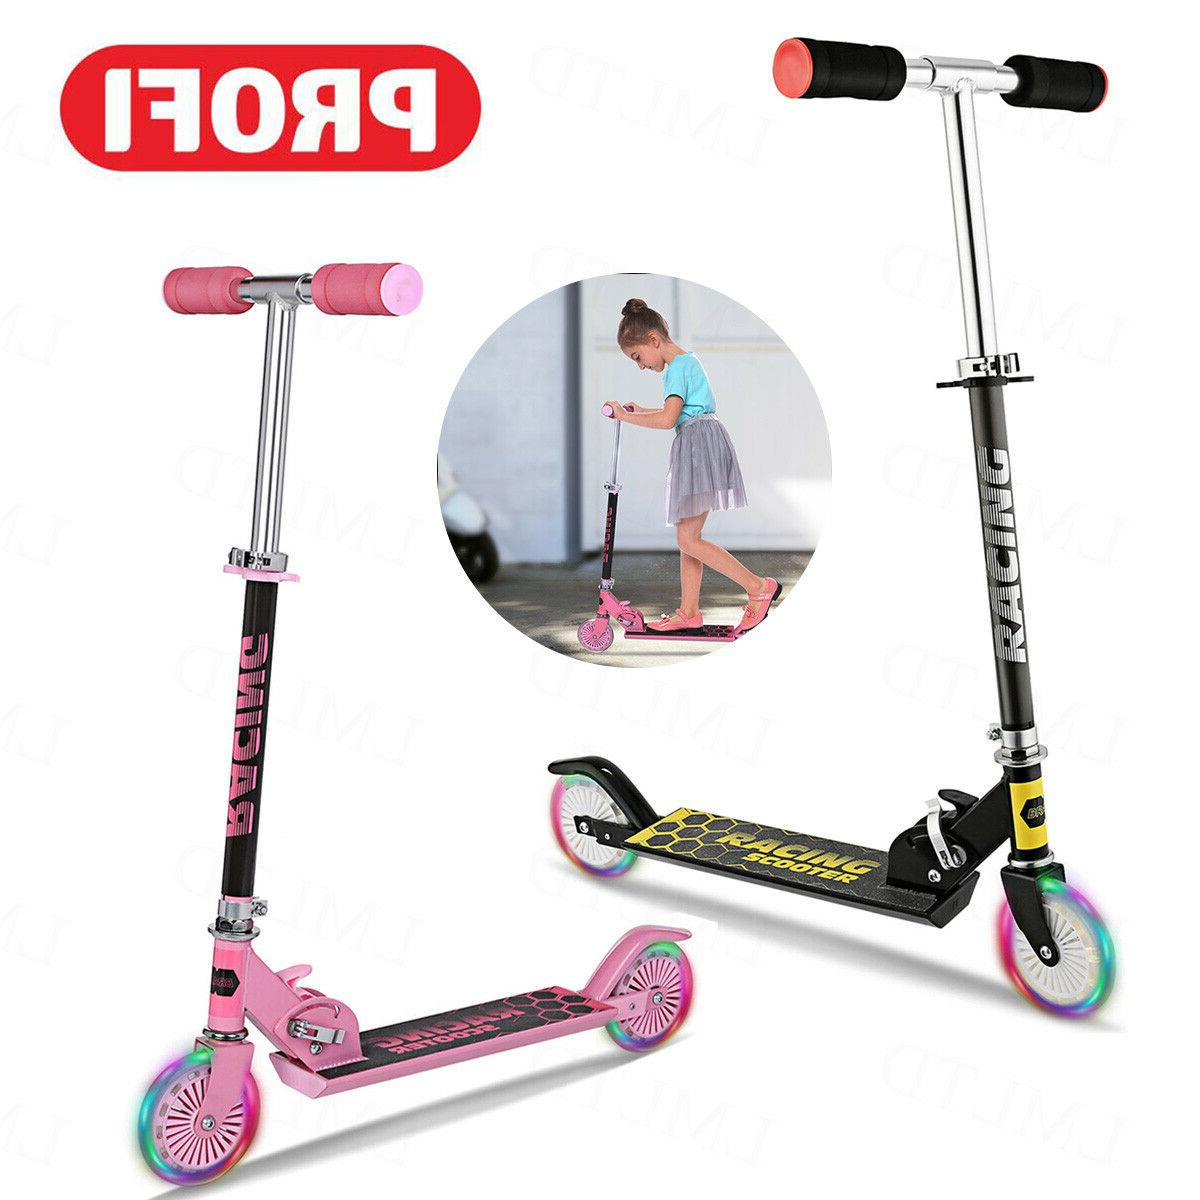 2 Kids Adjustable Height Scooters